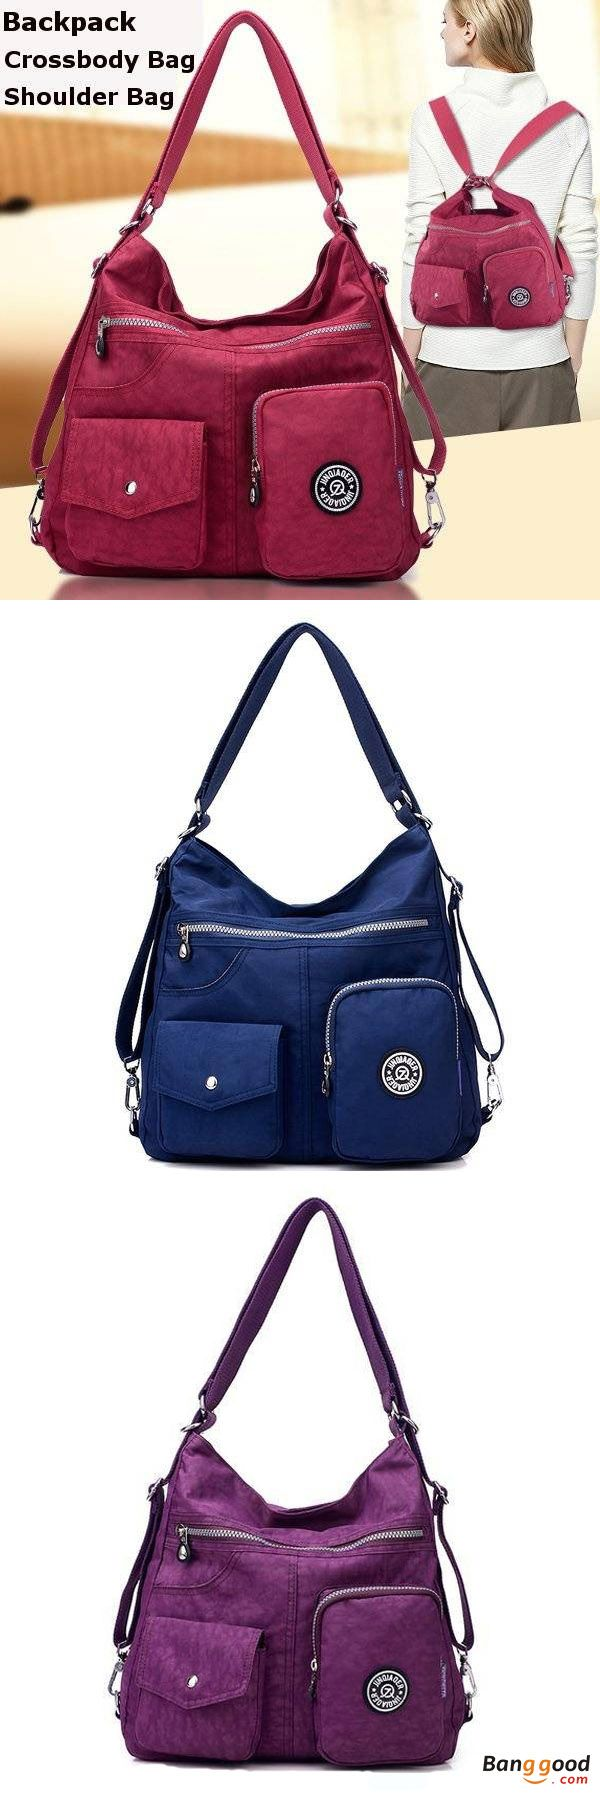 US$27.99 + Free shipping. Women bag, nylon waterproof crossbody bags, casual outdoor light backpack shoulder bags. Material: Nylon, Color: Black, Blue, Sea Blue, Sky Blue, Burgundy, Purple, Green, Rose Red, Beige etc. 11 Colors to Match Your Style.